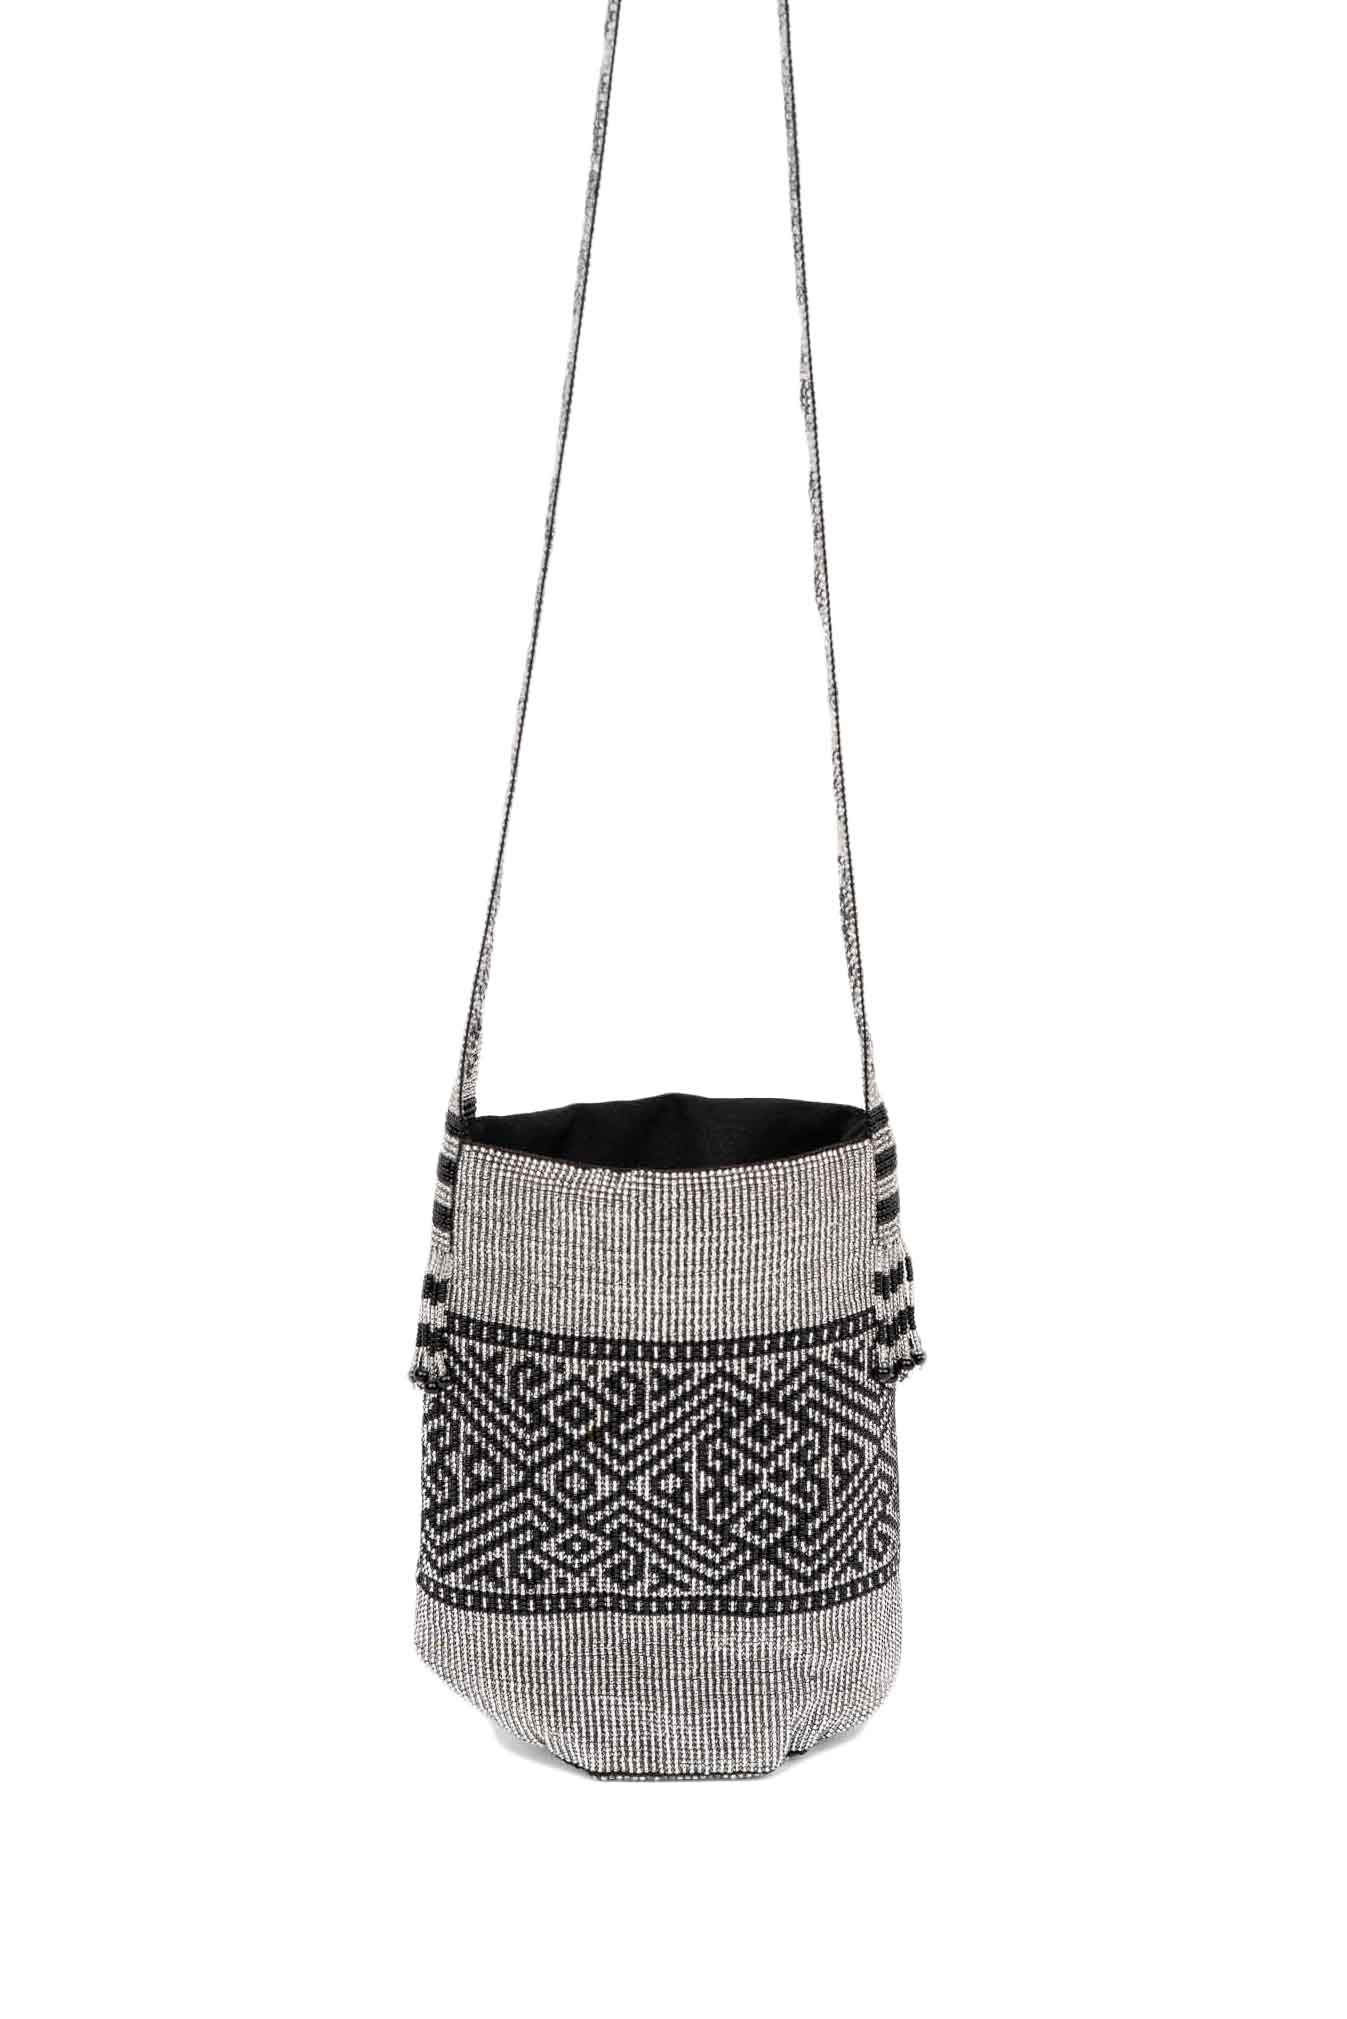 Kamentsa Luxurious Silver Mochila Bag